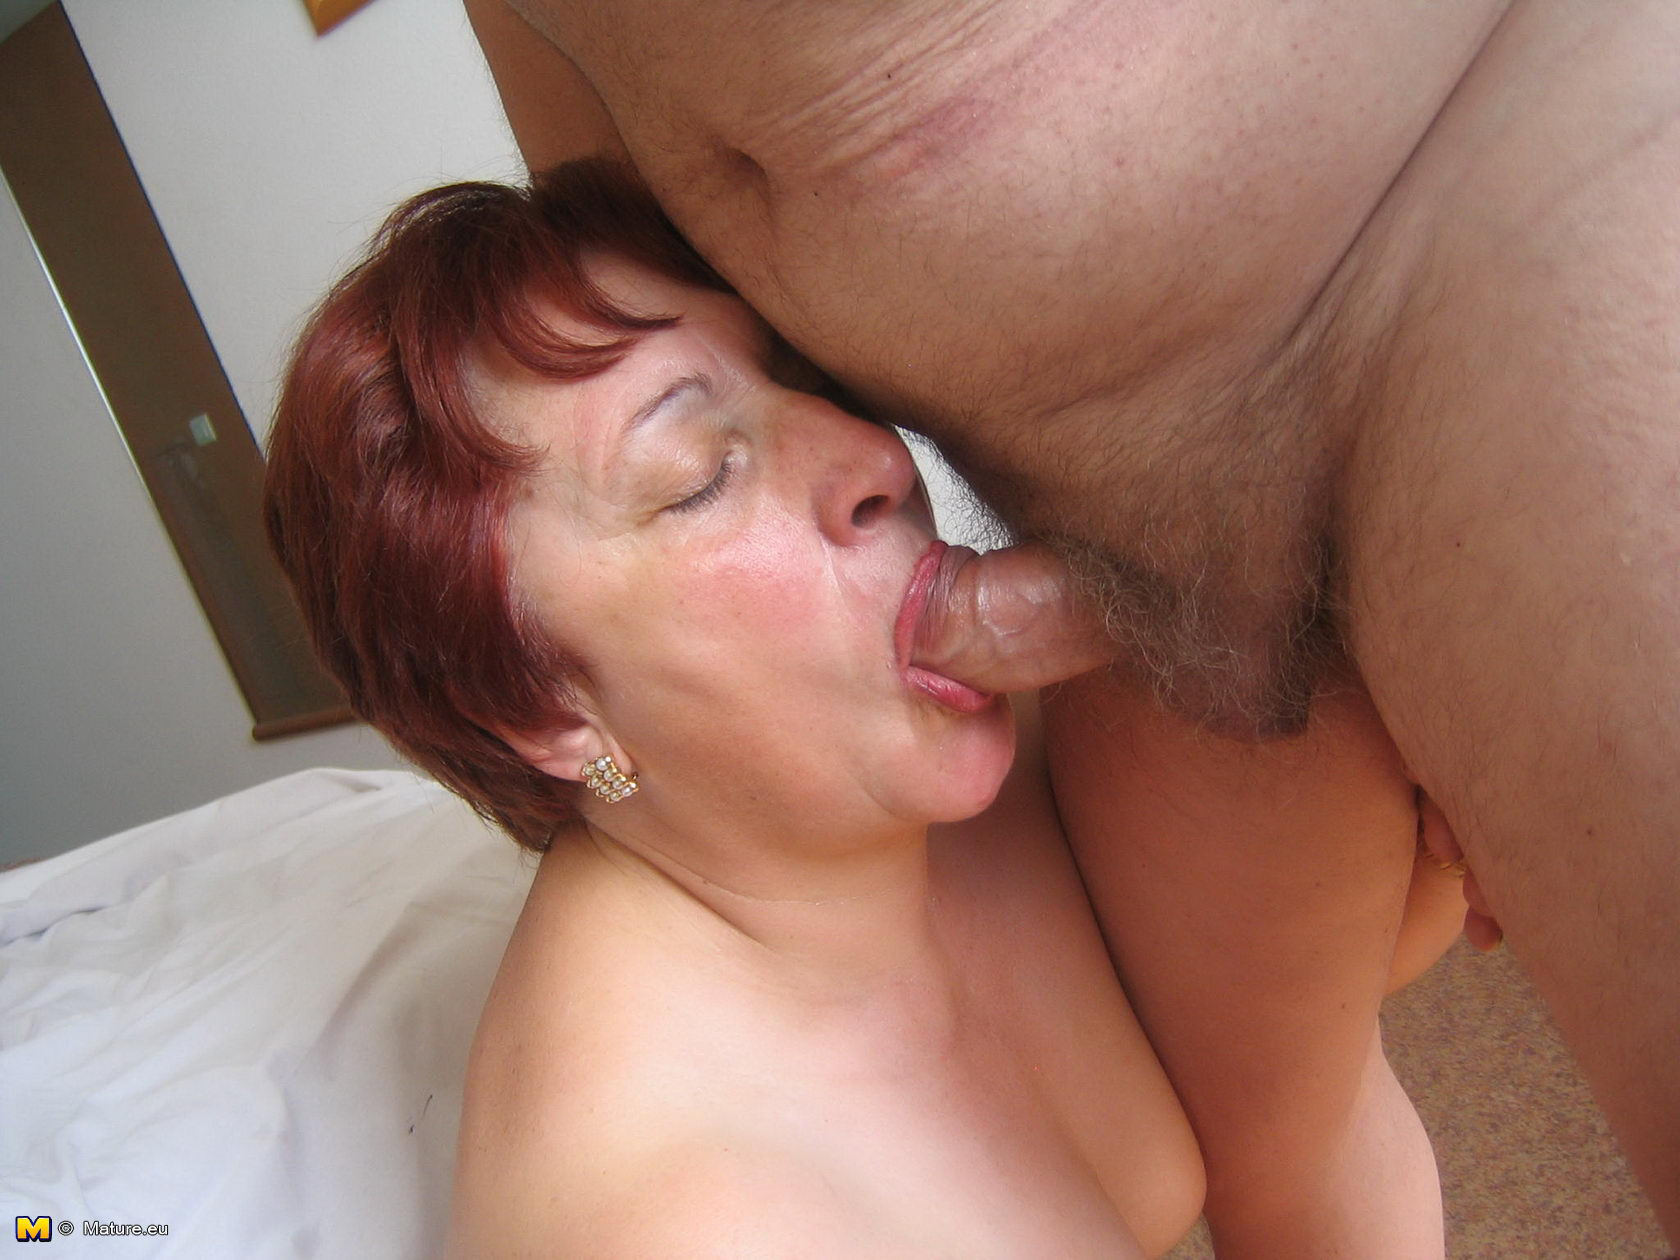 French wife joan loves my cock every time she sits on it 5